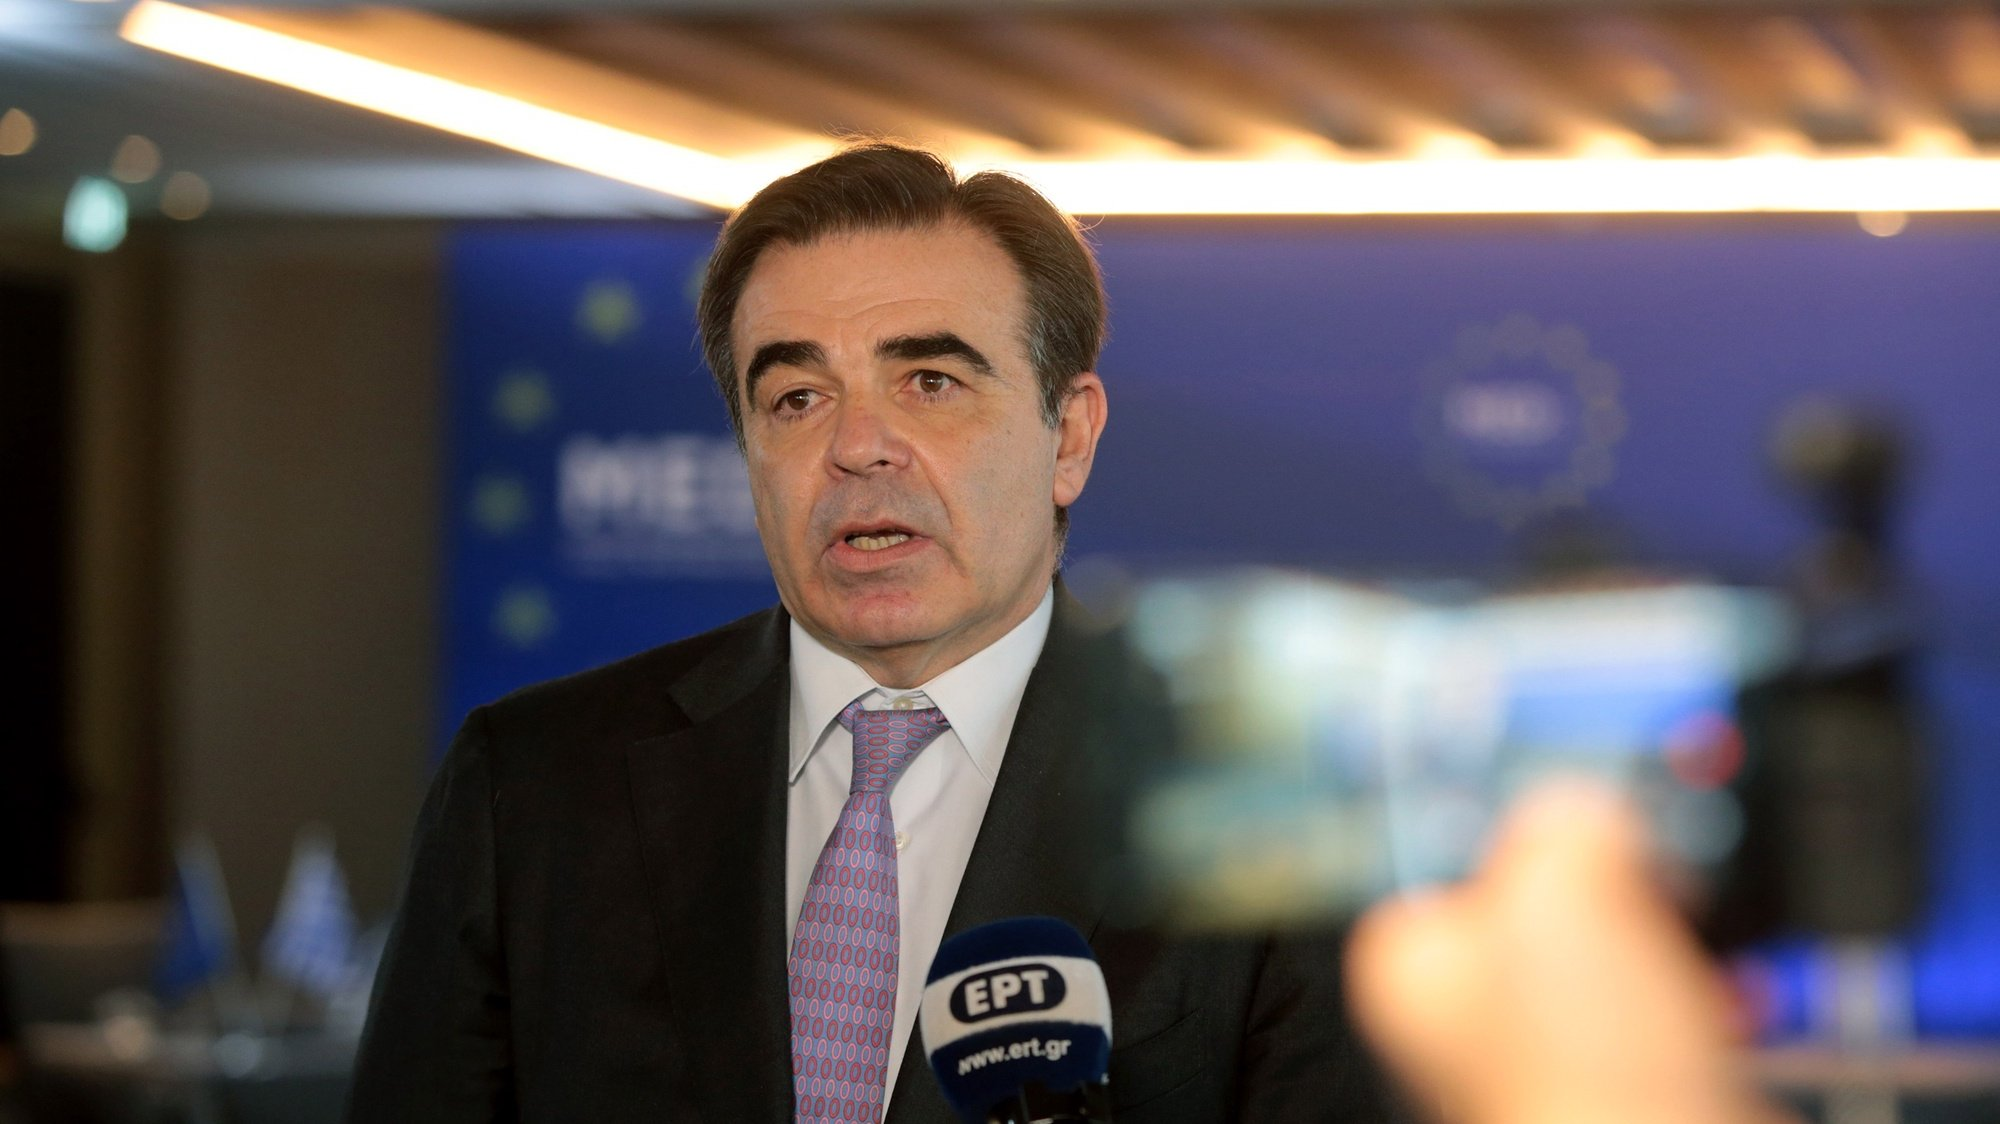 epa09085070 European Commission Vice-President for Promoting our European Way of Life, Margaritis Schinas speaks to the press during the Athens Informal Ministerial Meeting (MED 5), in Athens, Greece, 20 March 2021. The conference focuses on further formation of the common views and proposals of the five participating countries, as well as their systematic promotion to the ongoing dialogue in the EU on the new European Agreement for Migration and Asylum.  EPA/PANTELIS SAITAS